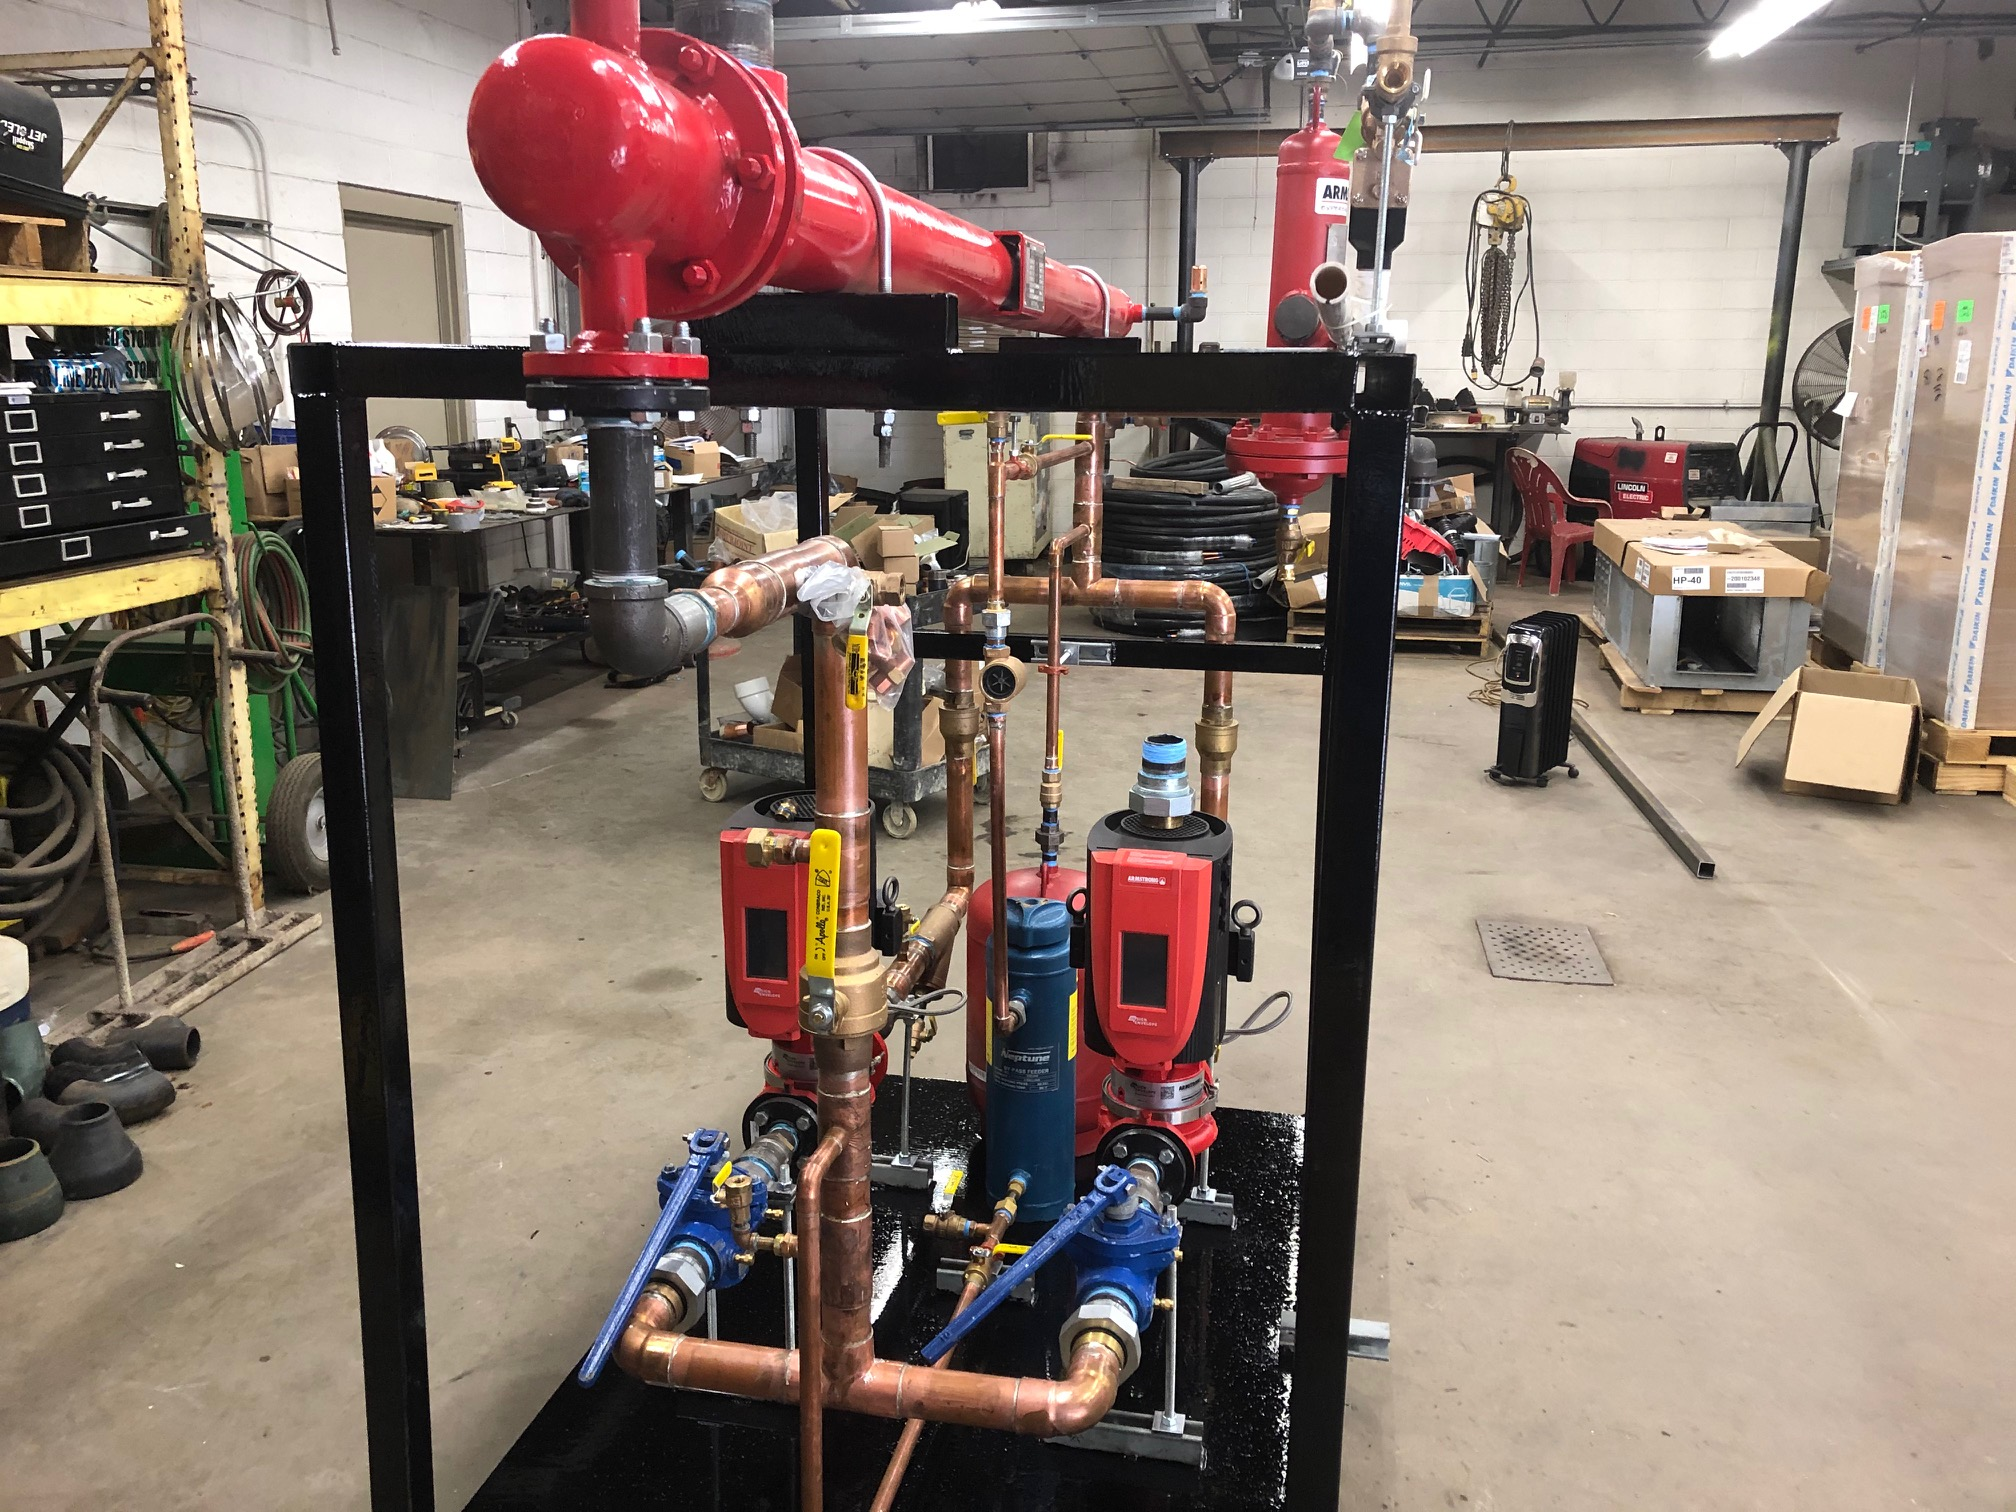 Steam to heating hot water skid made by Pro-Mechanical